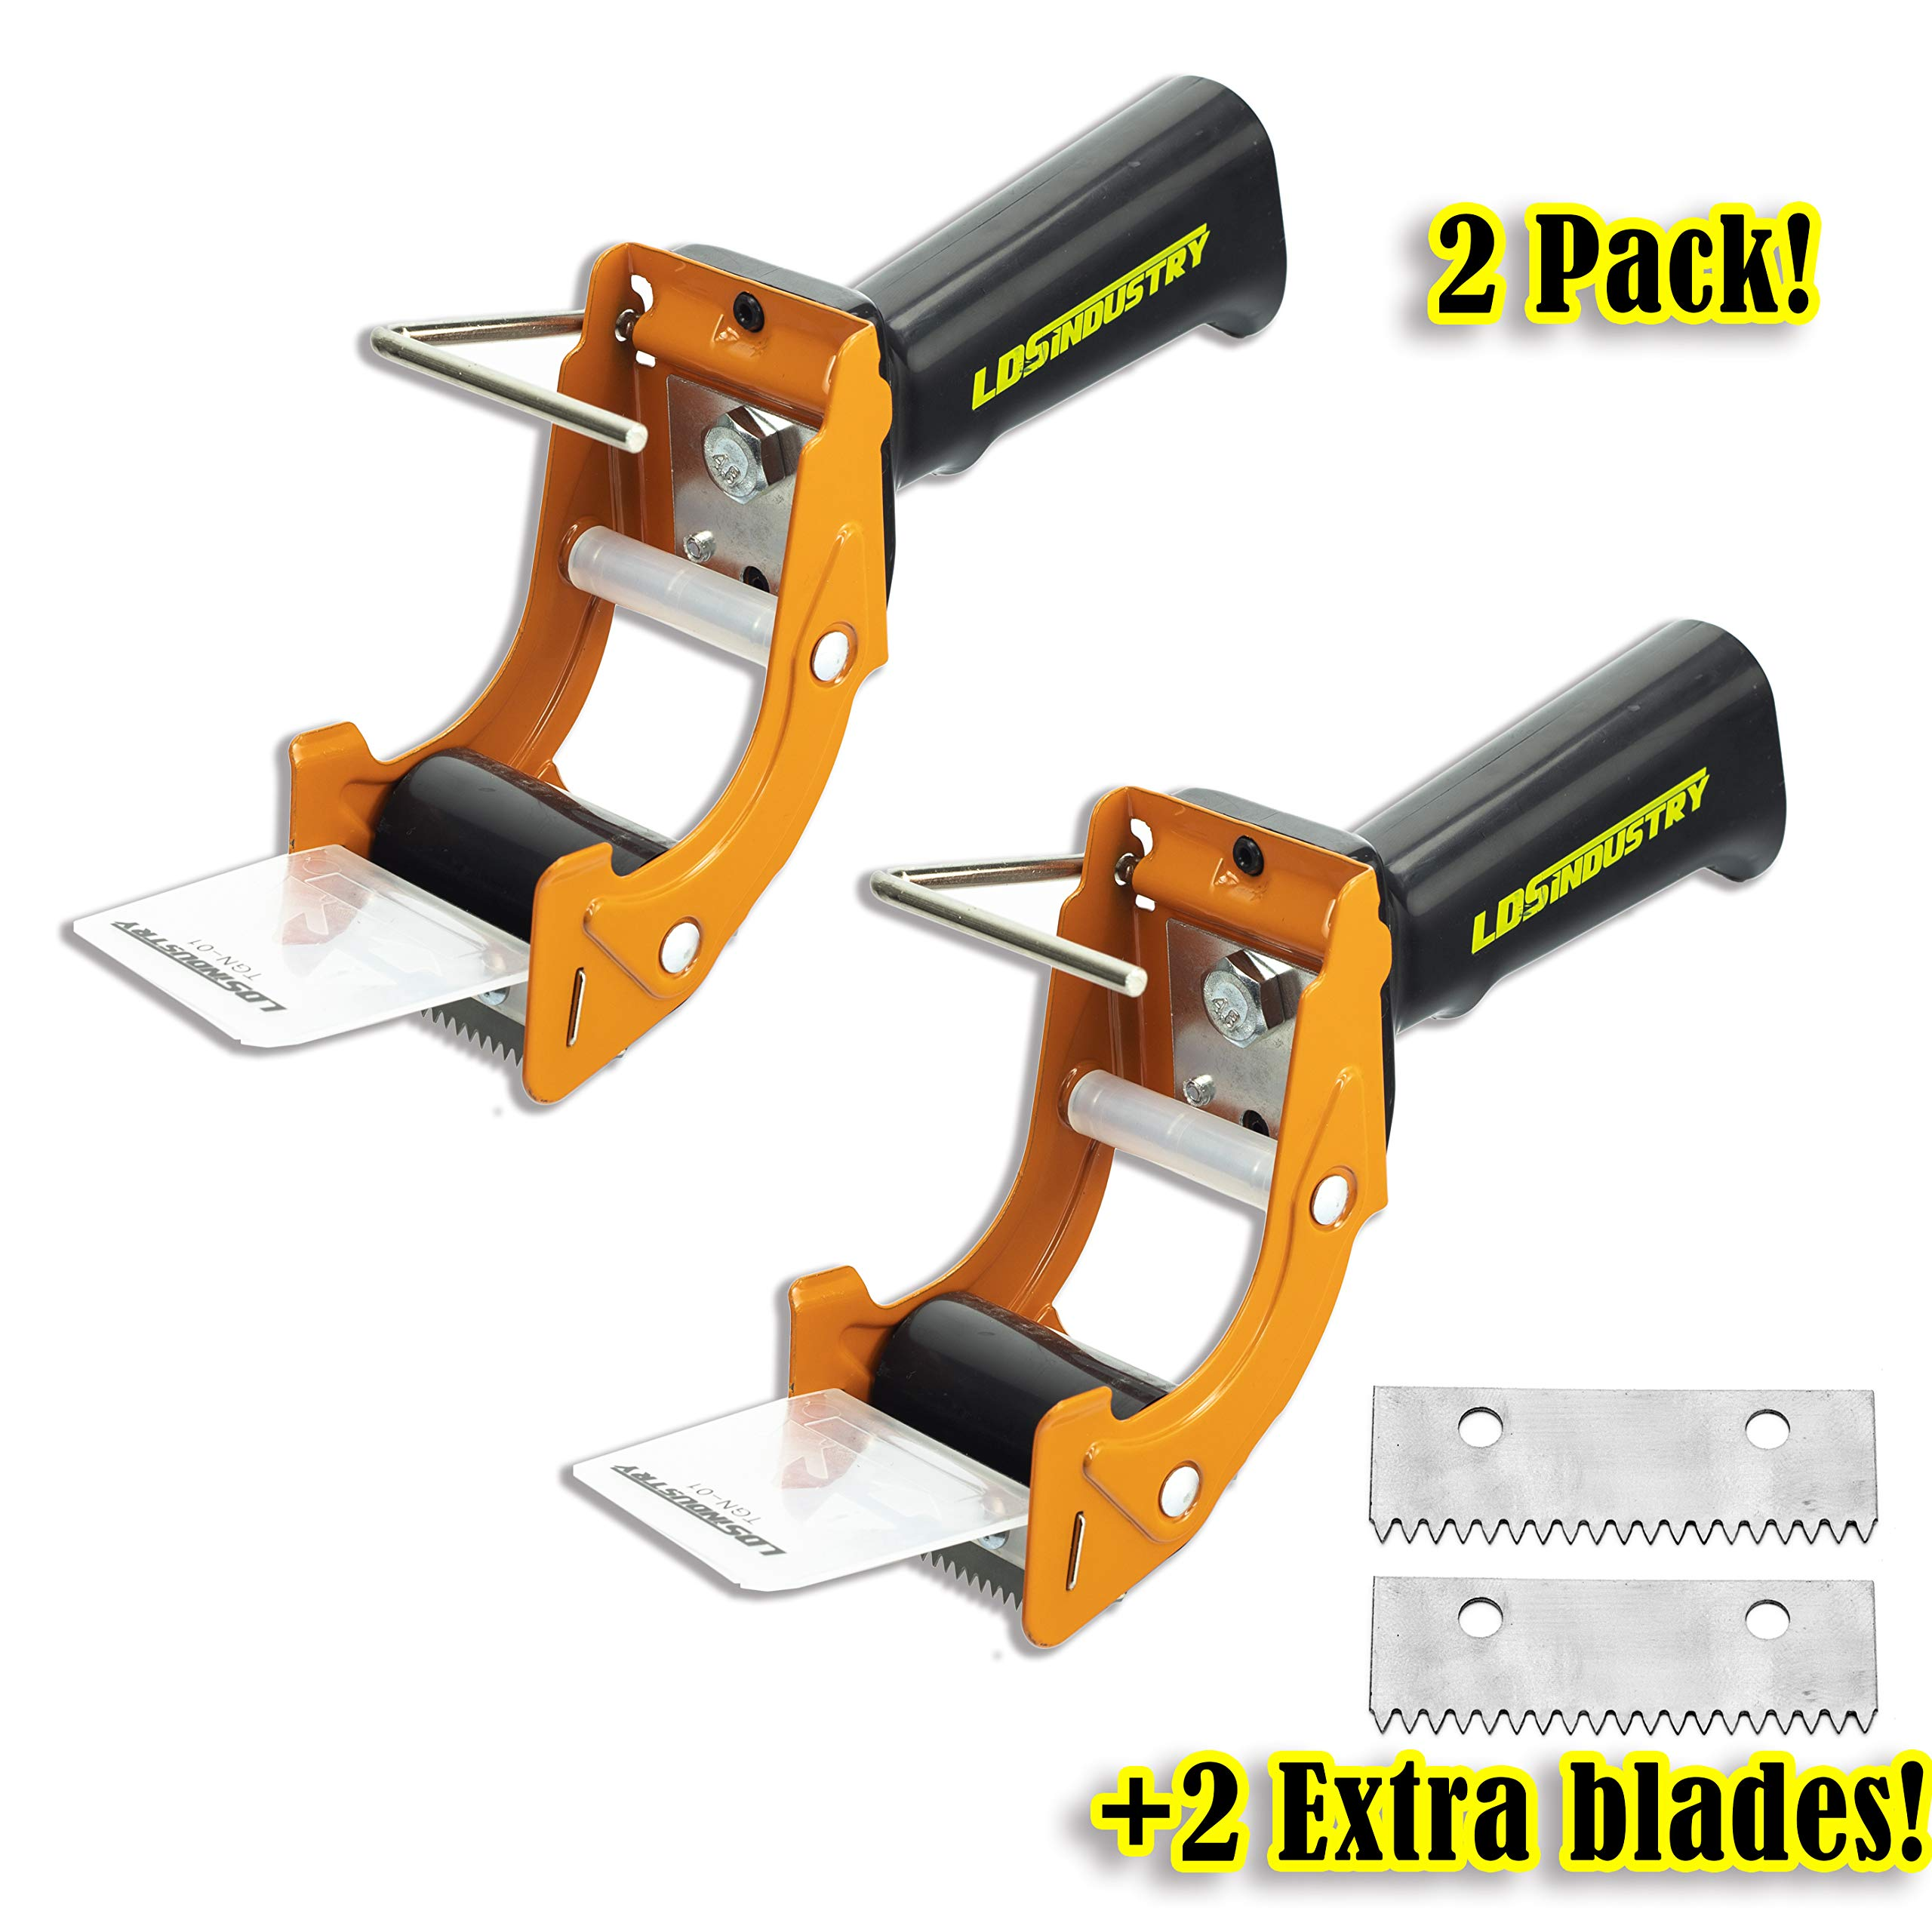 2 Pcs Rapid-Replace Packing Tape Dispenser Guns with Extra Blade, 2 in (50mm) Lightweight Ergonomic Industrial Handheld Heavy Duty Tape Cutter for Carton, Packaging and Box Sealing, LDS Industry by LDS Industry